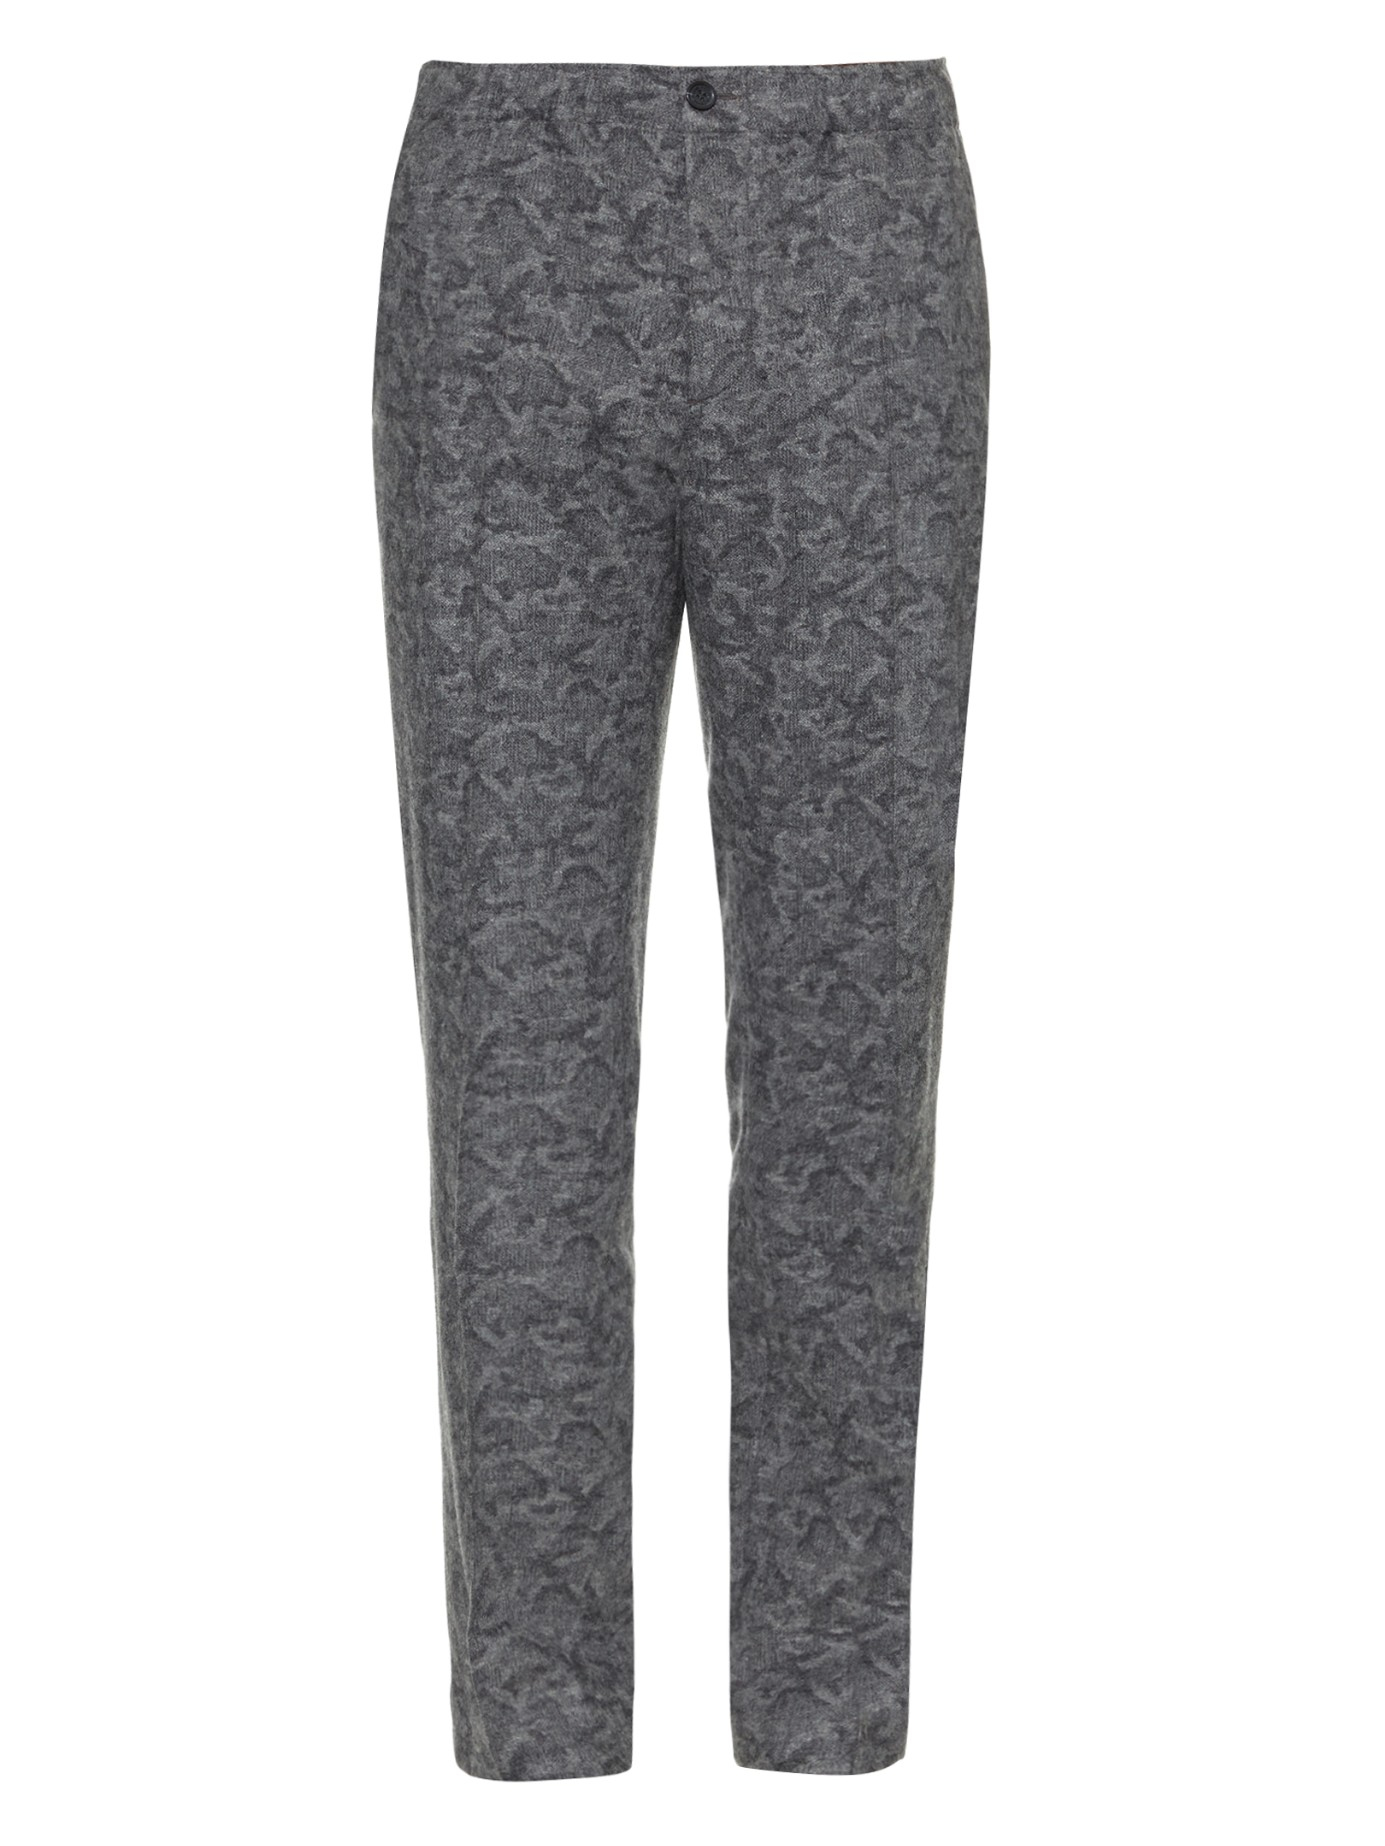 Maison Kitsuné Camouflage-print Wool Trousers in Grey (Grey) for Men